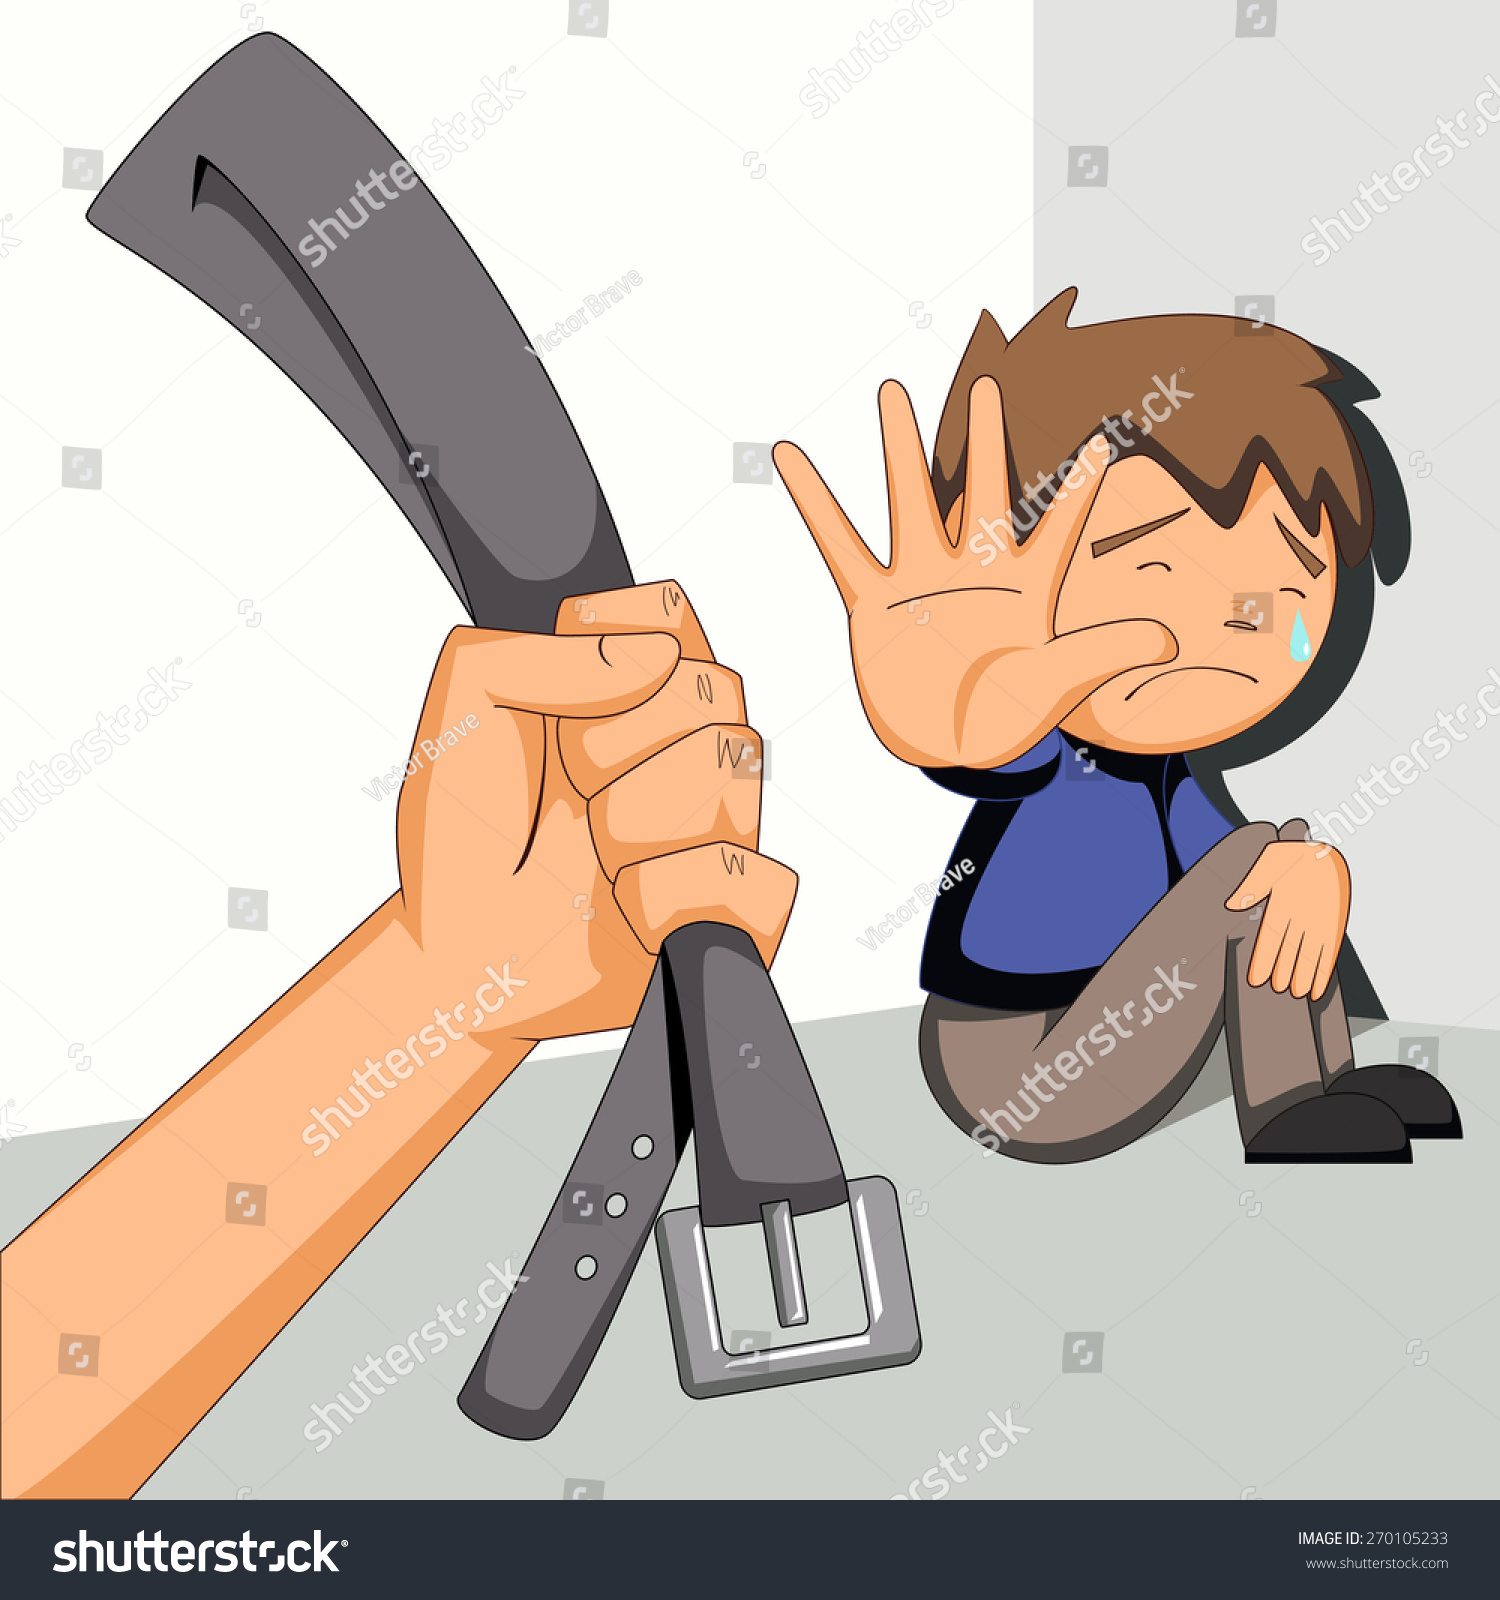 Child Abuse Vector Illustration Stock Vector (Royalty Free) 270105233.